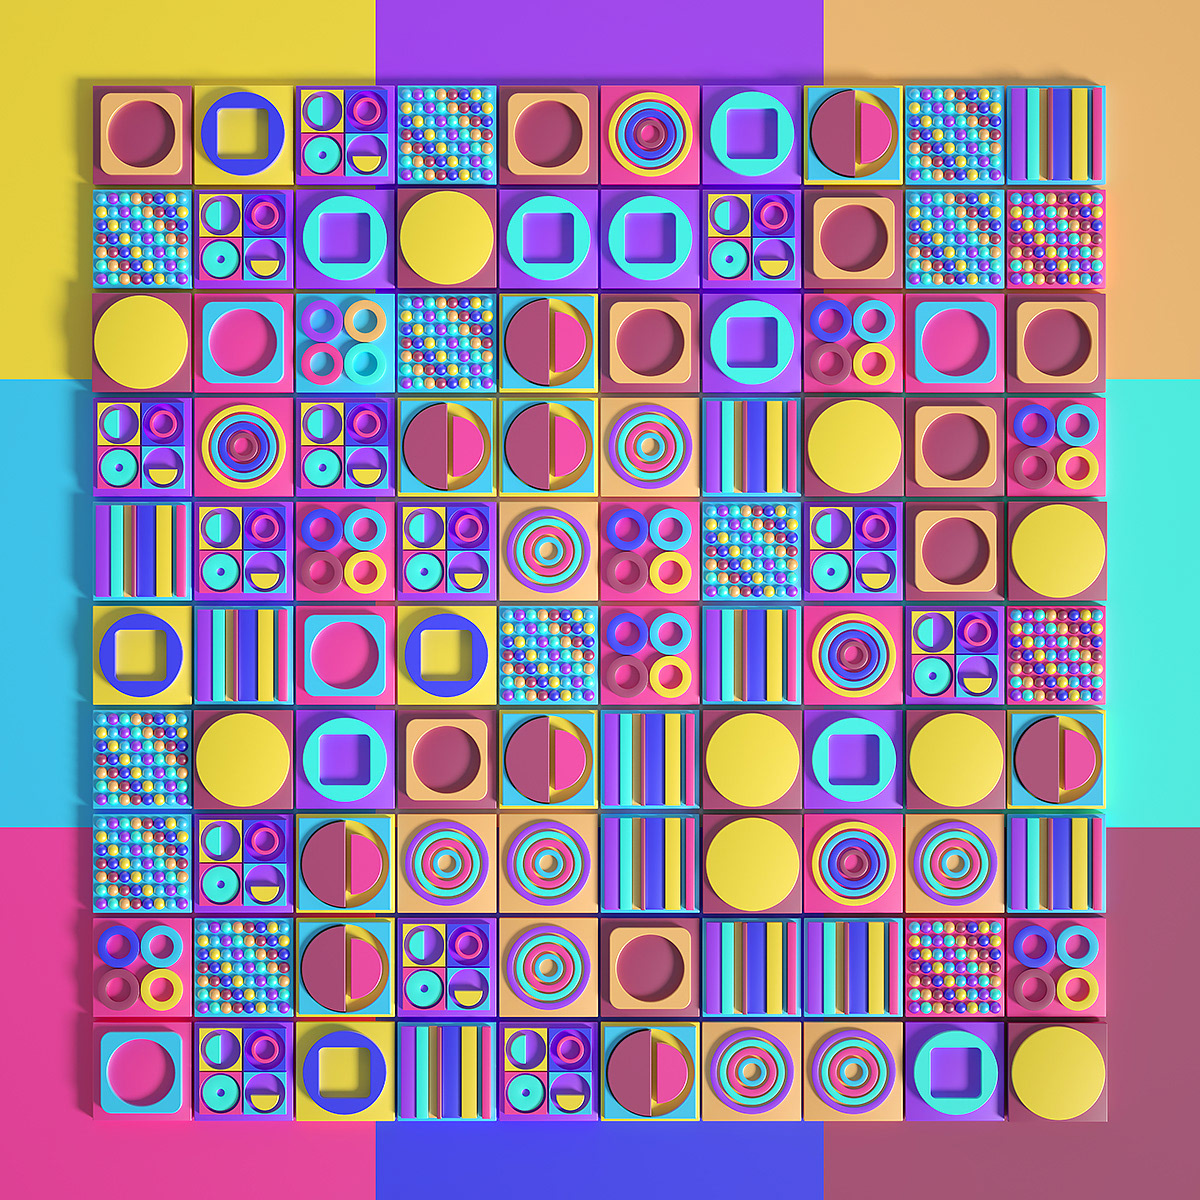 Image may contain: colorfulness, screenshot and pattern